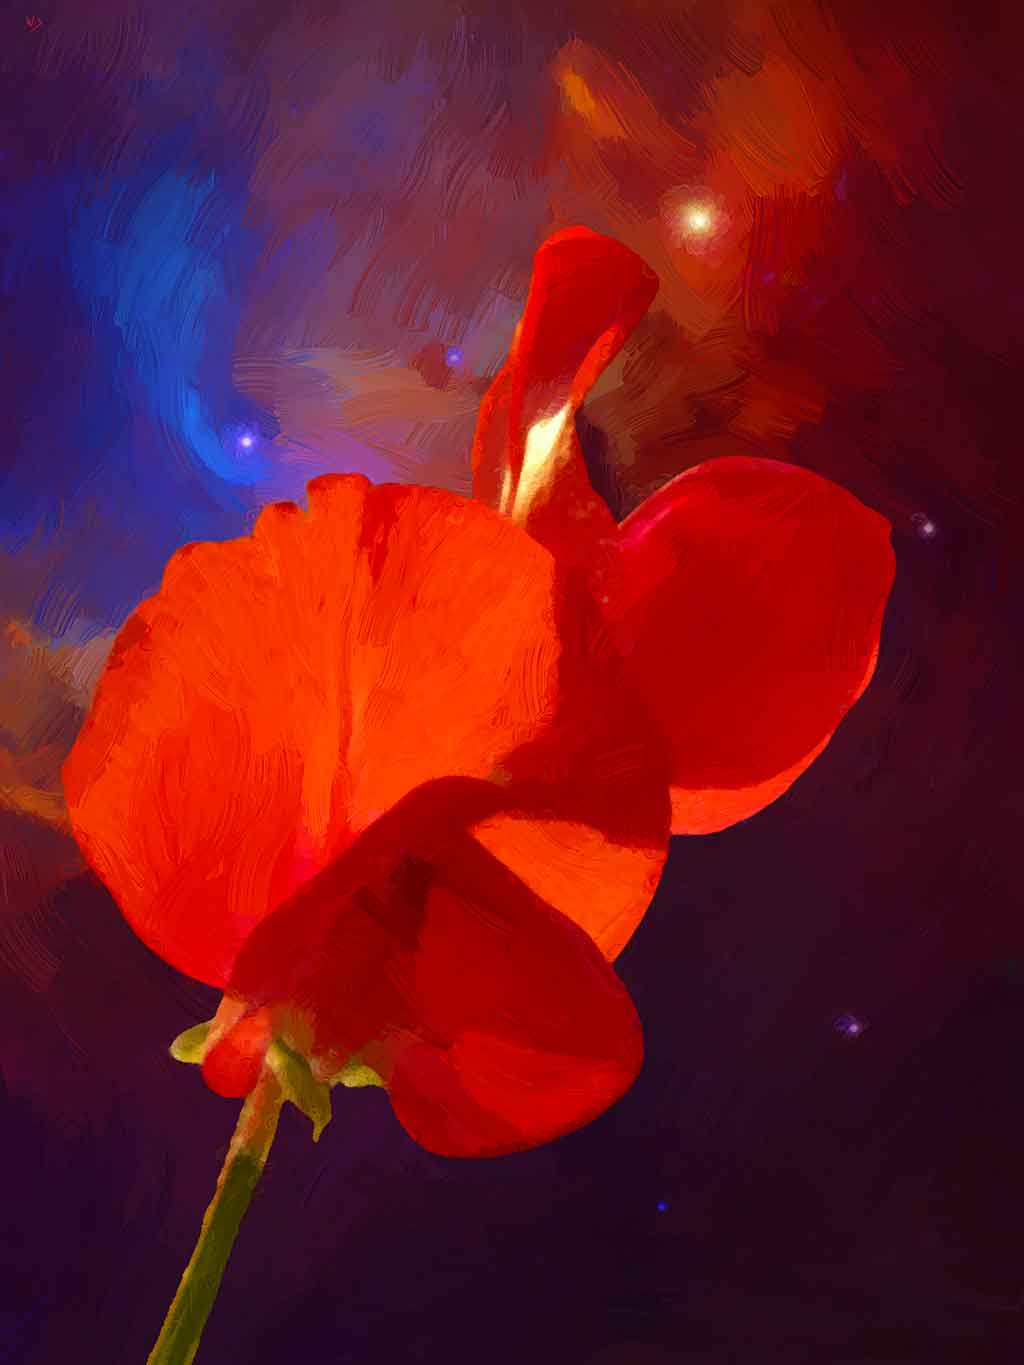 Vetch Flower in Outer Space, digital Oil Painting on Art Canvas Print by Wieslaw Sadurski